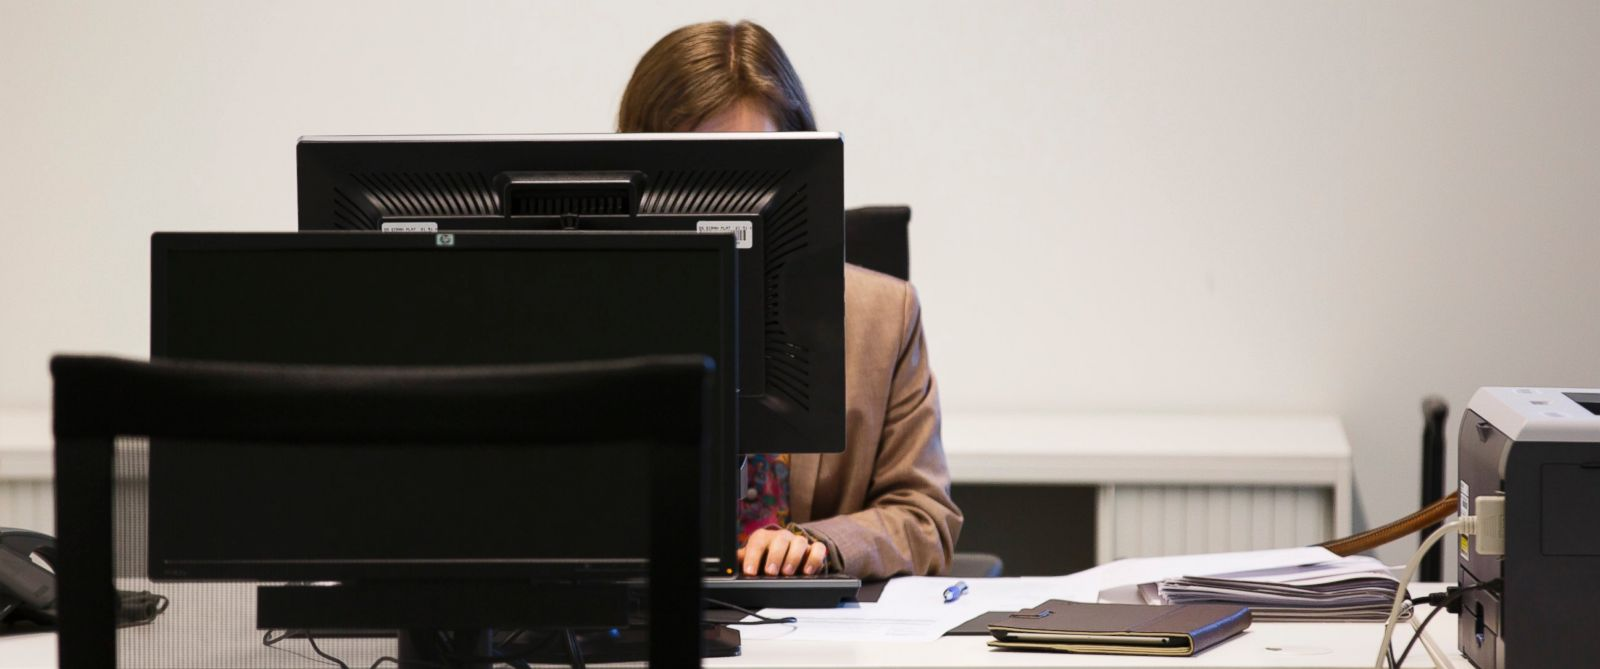 PHOTO: A woman working on a computer in an office on June 23, 2014, in Luxembourg City, Luxembourg.